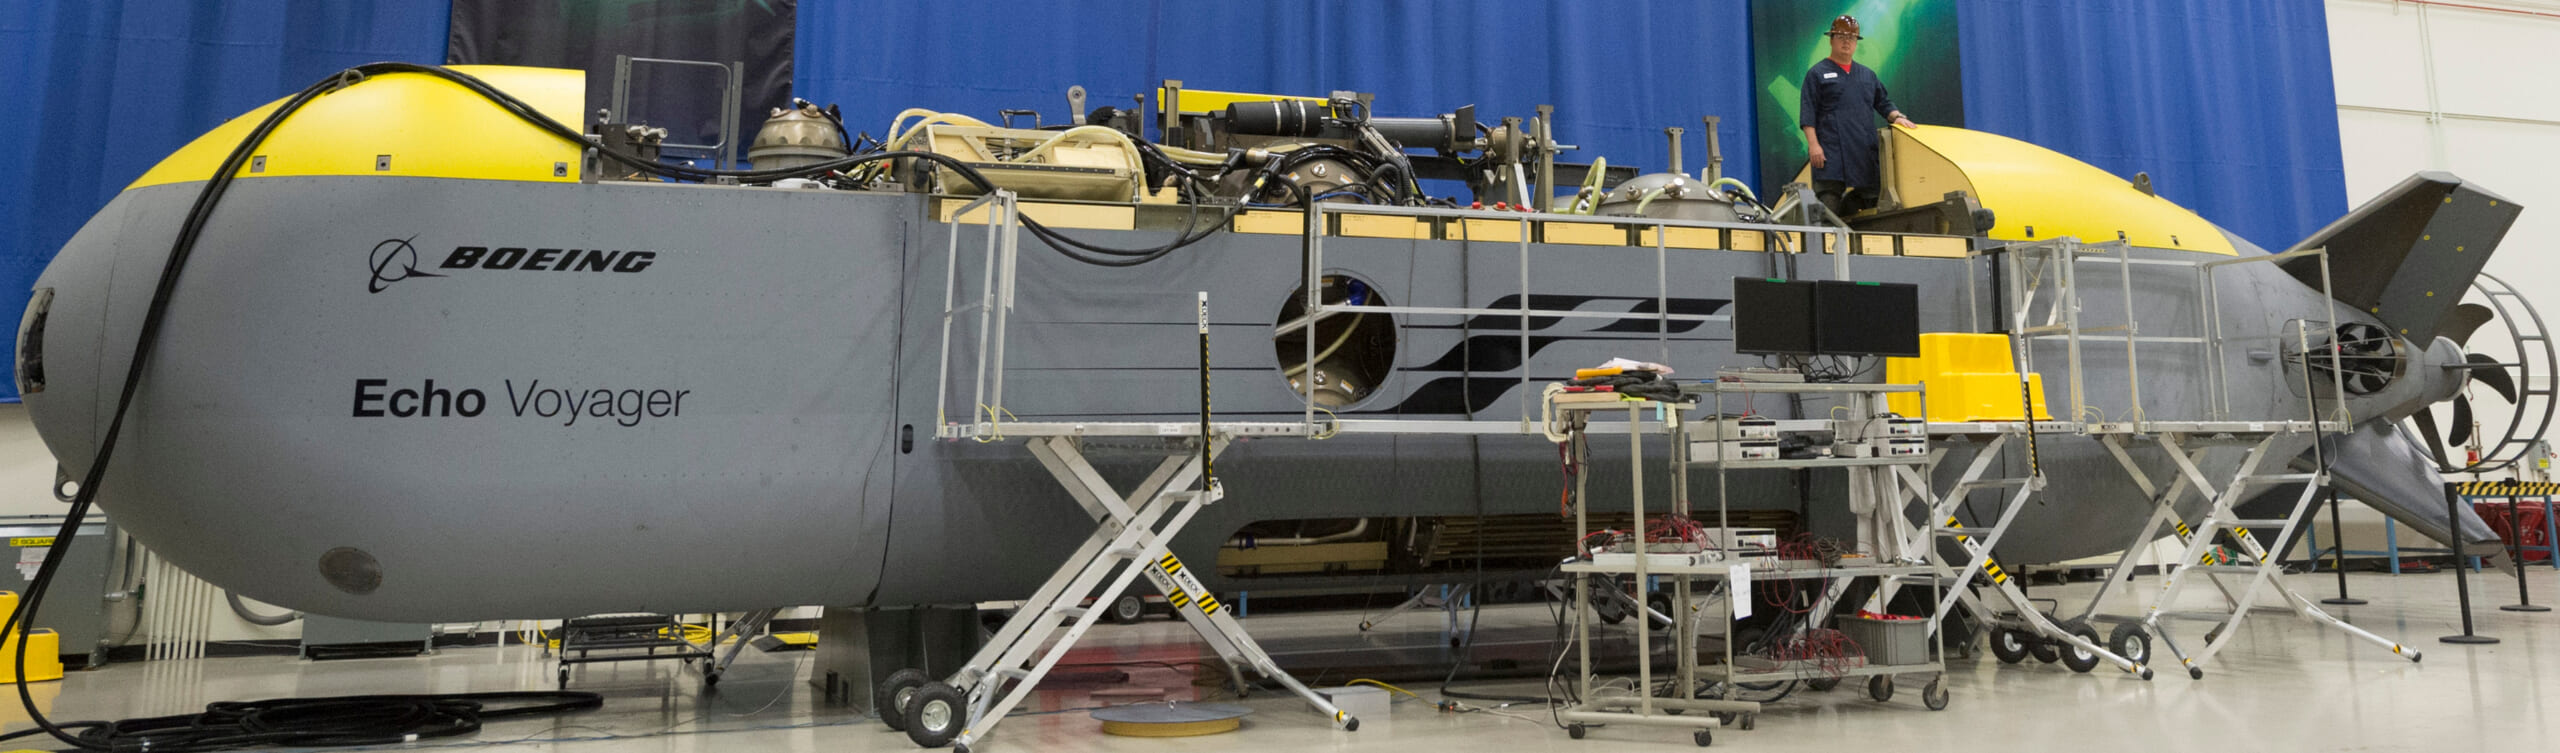 At 51 feet long, it's longer than its two predecessors combined